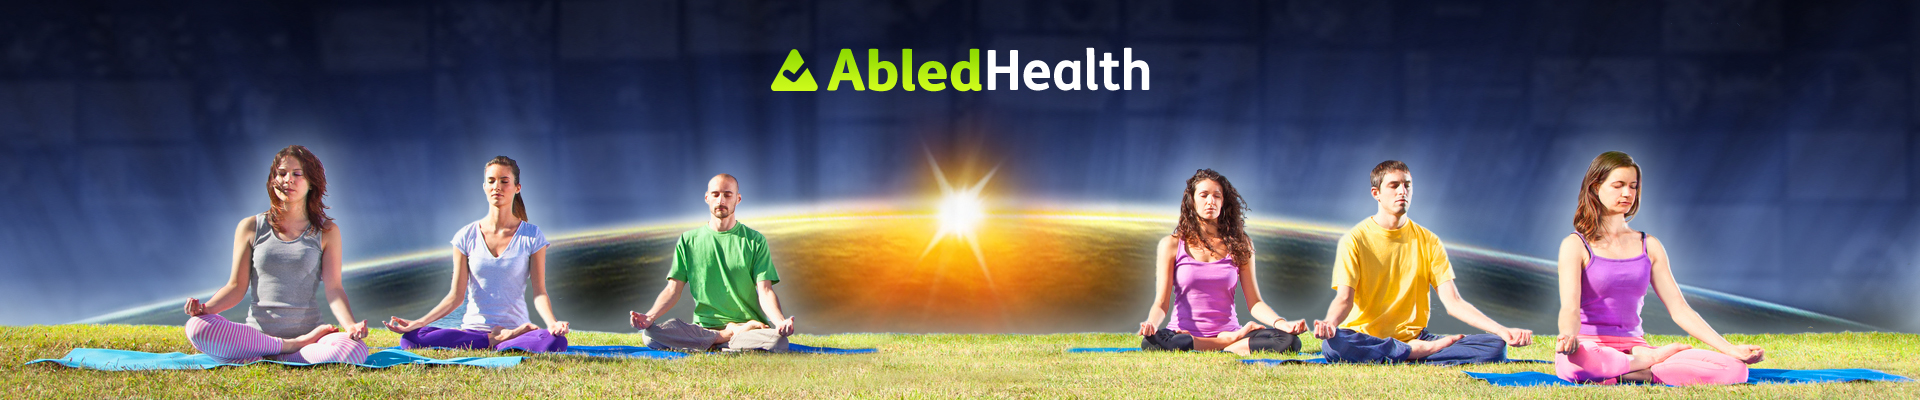 AbledHealth banner shows six people sitting cross-legged on grass meditating beside a lake